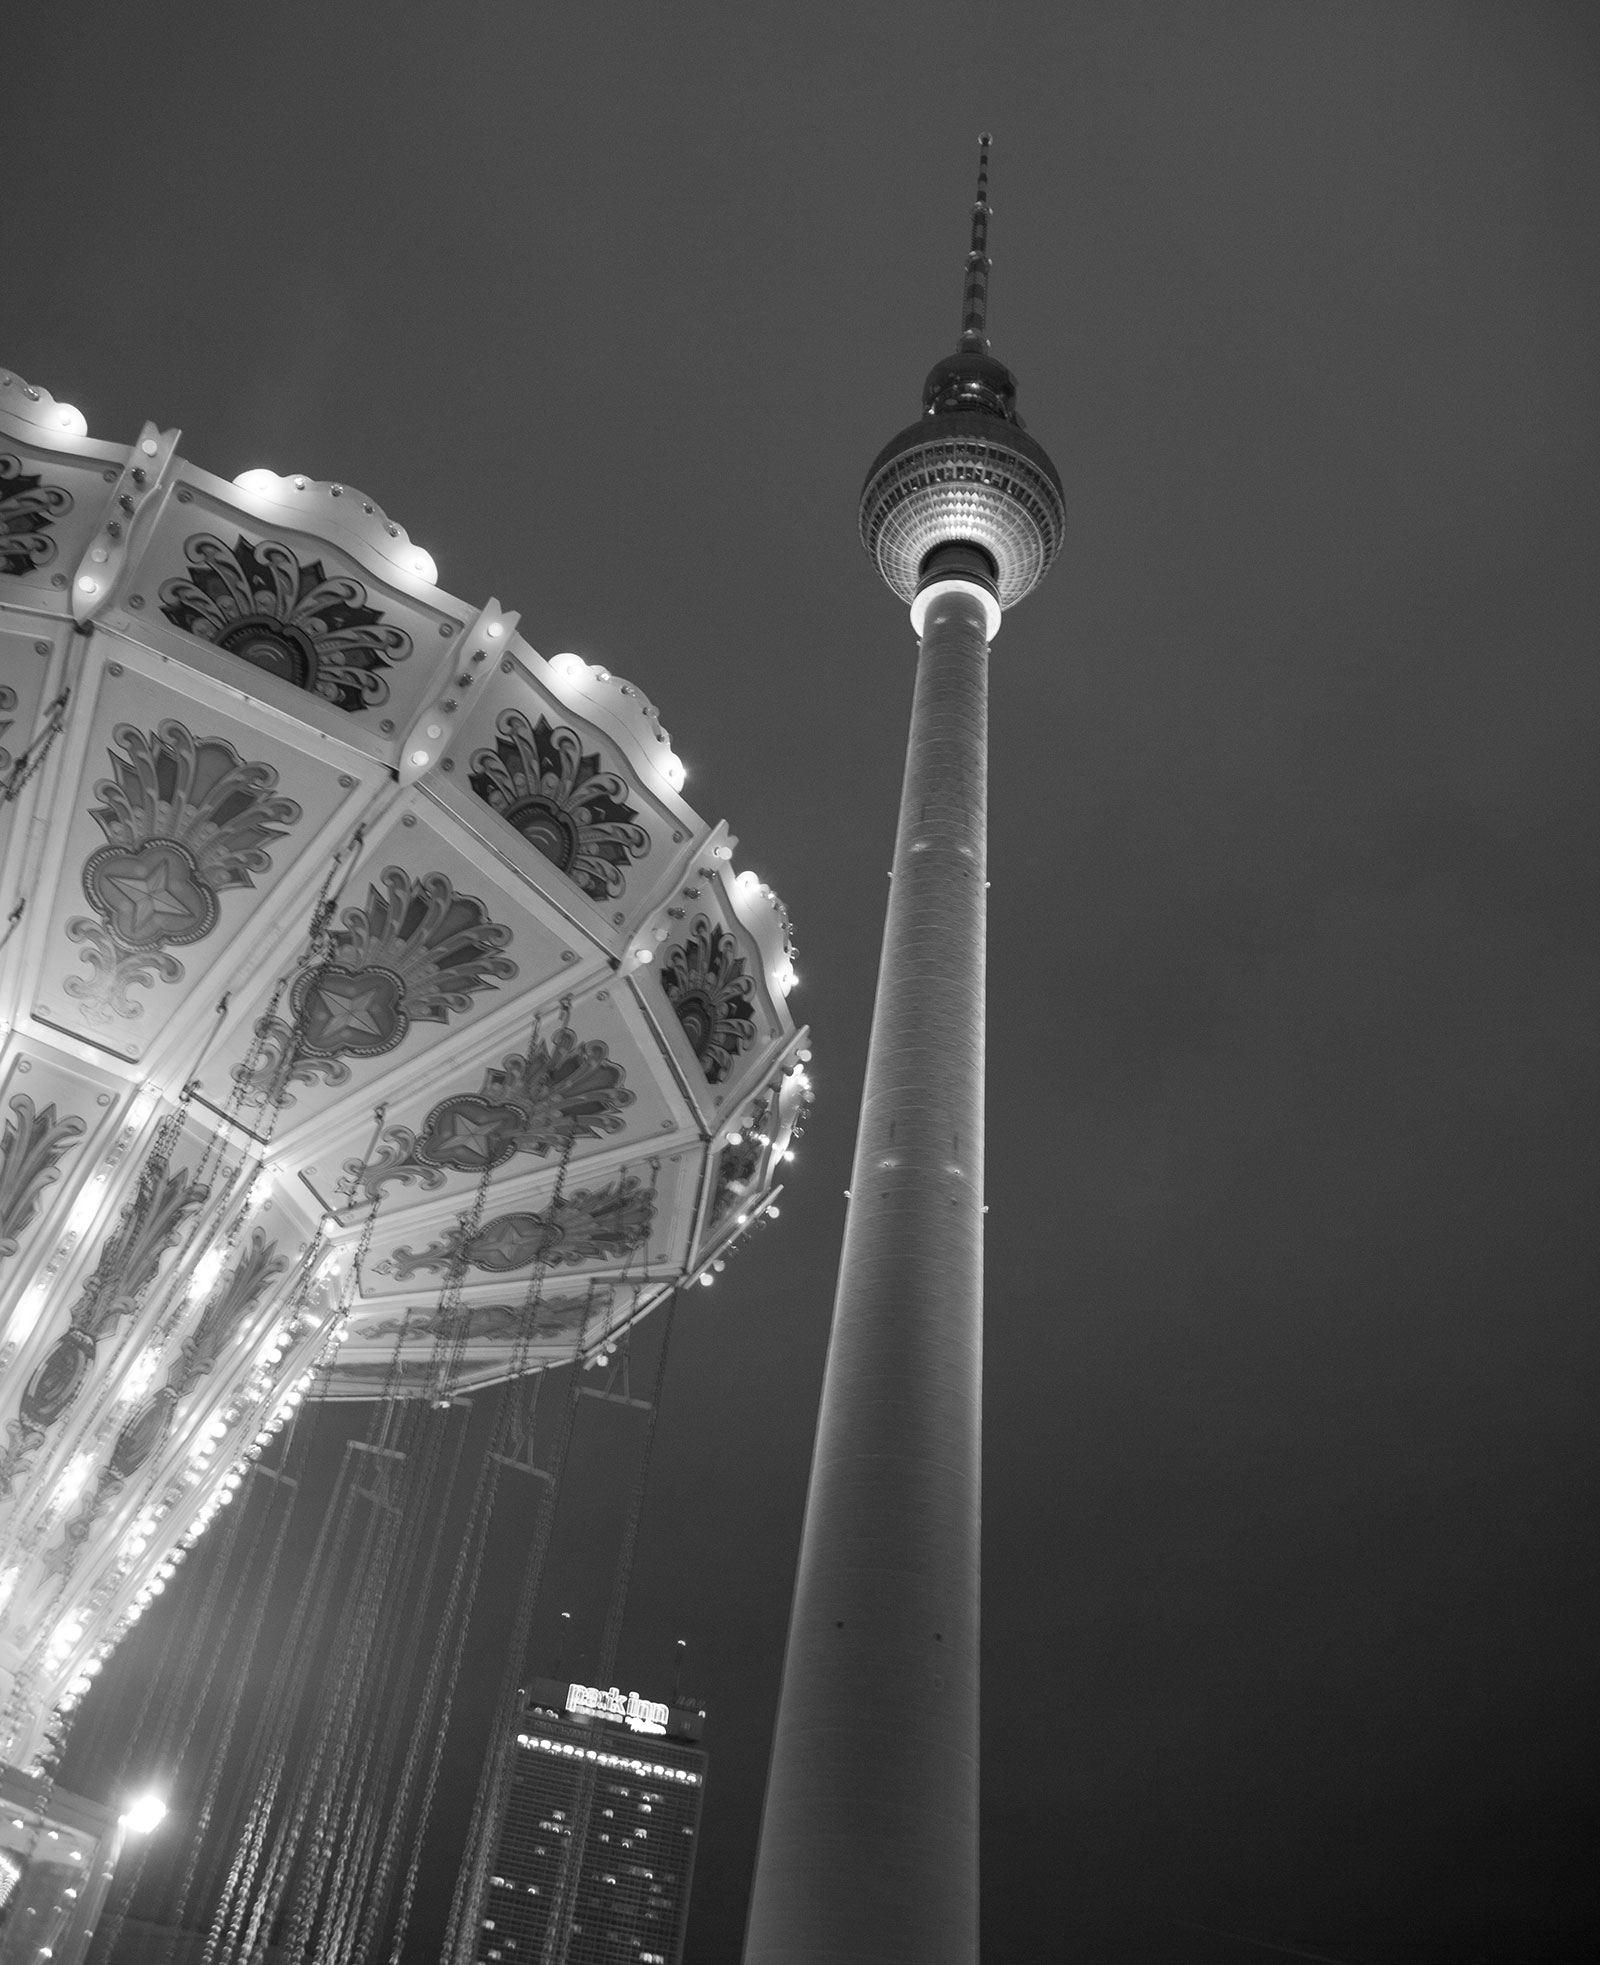 Tower and Carousel, Berlin